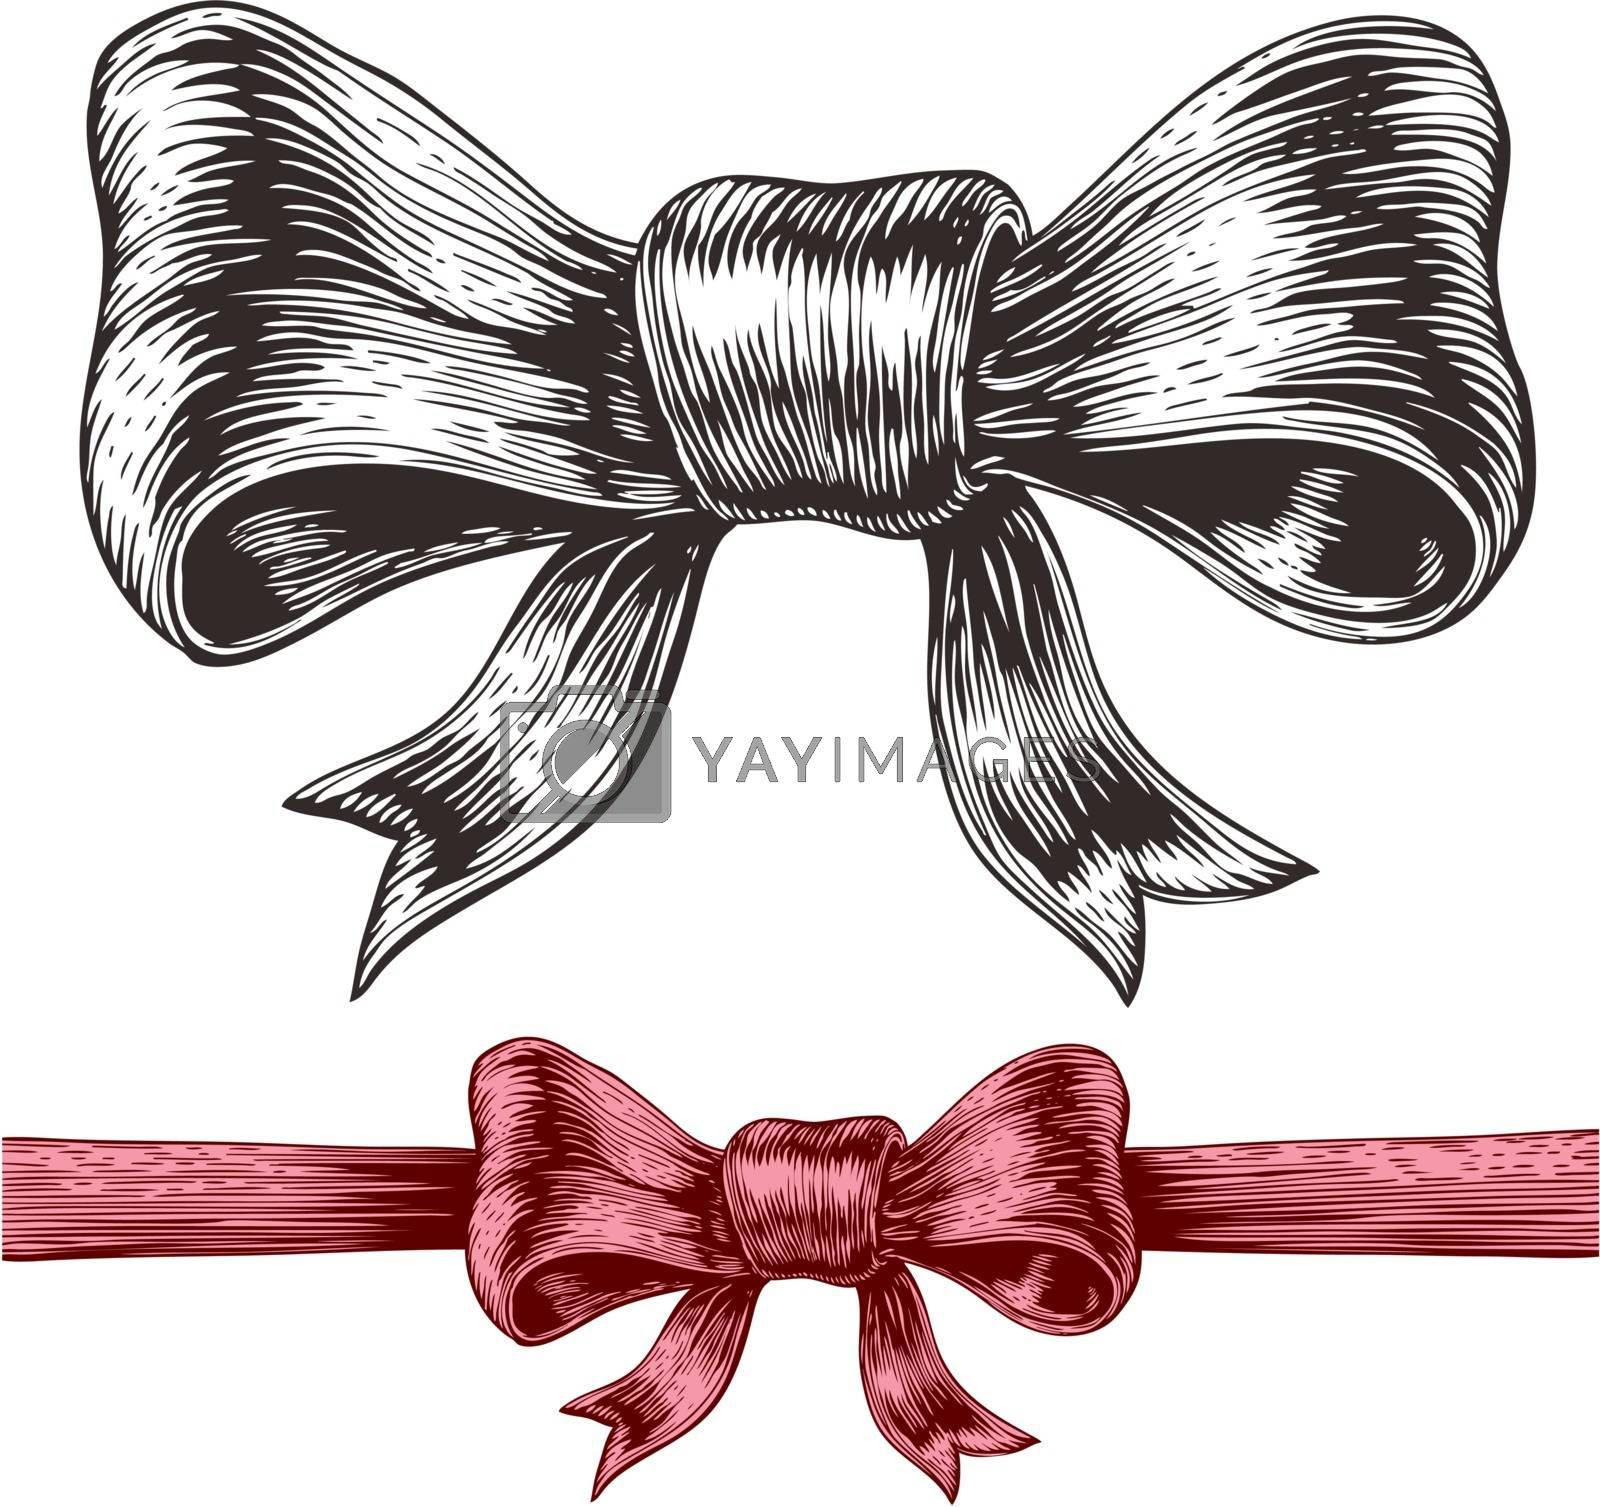 An engraving style drawing of a bow. Eps8. CMYK. Global colors. Gradients free.